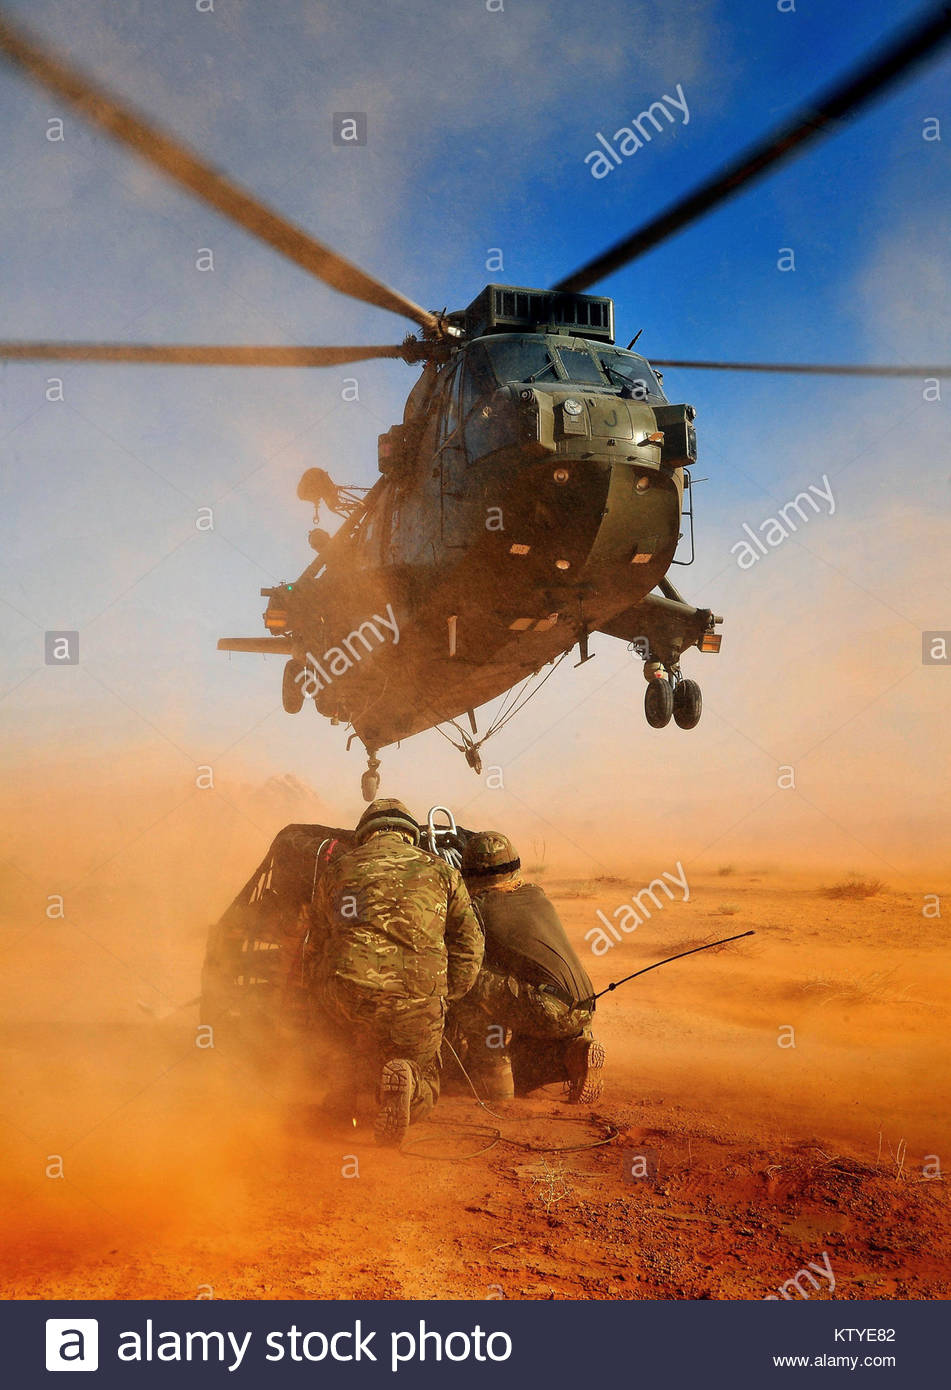 Royal Marines from the Commando Mobile Air Operations Team conducting load lifting operations with a SeaKing Mk4 - Stock Image